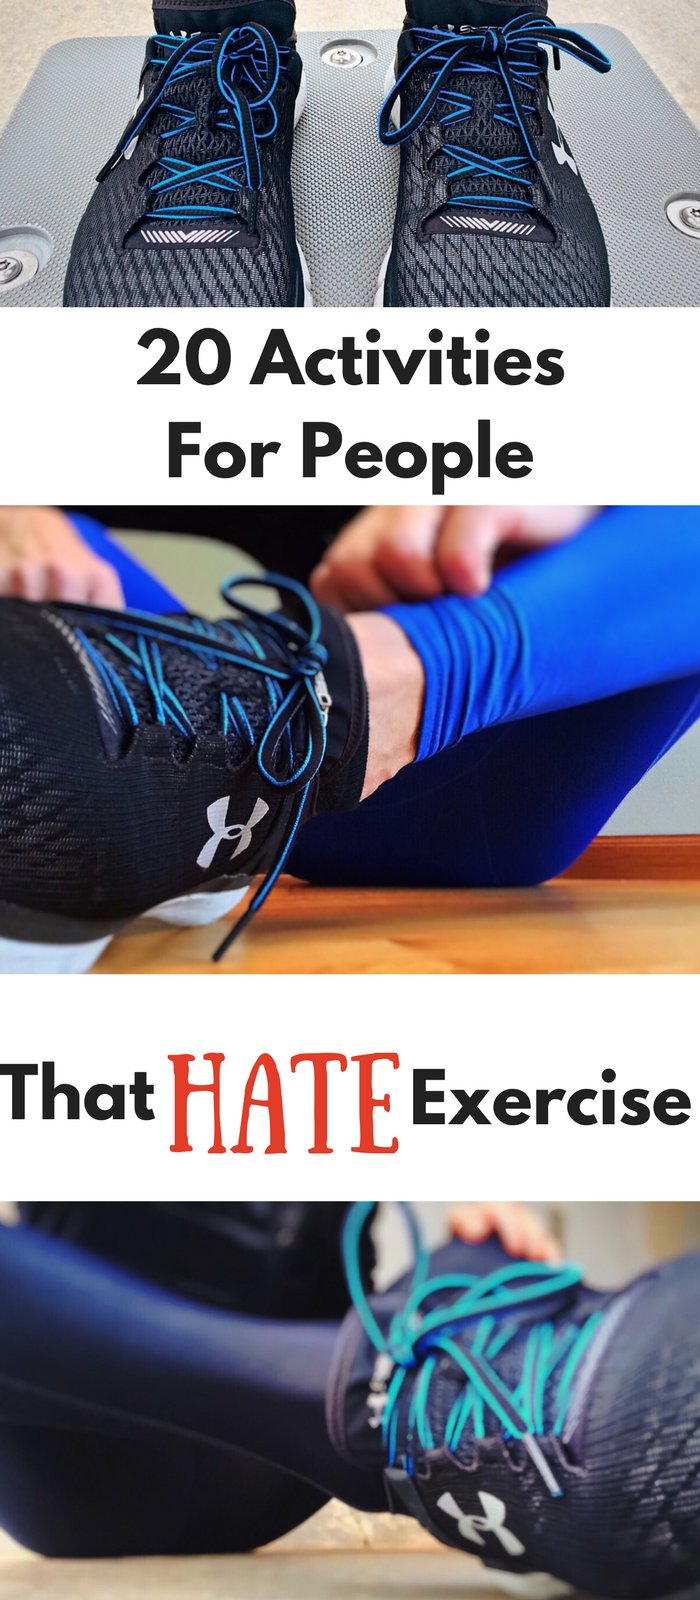 20 Activities for People That HATE Exercise